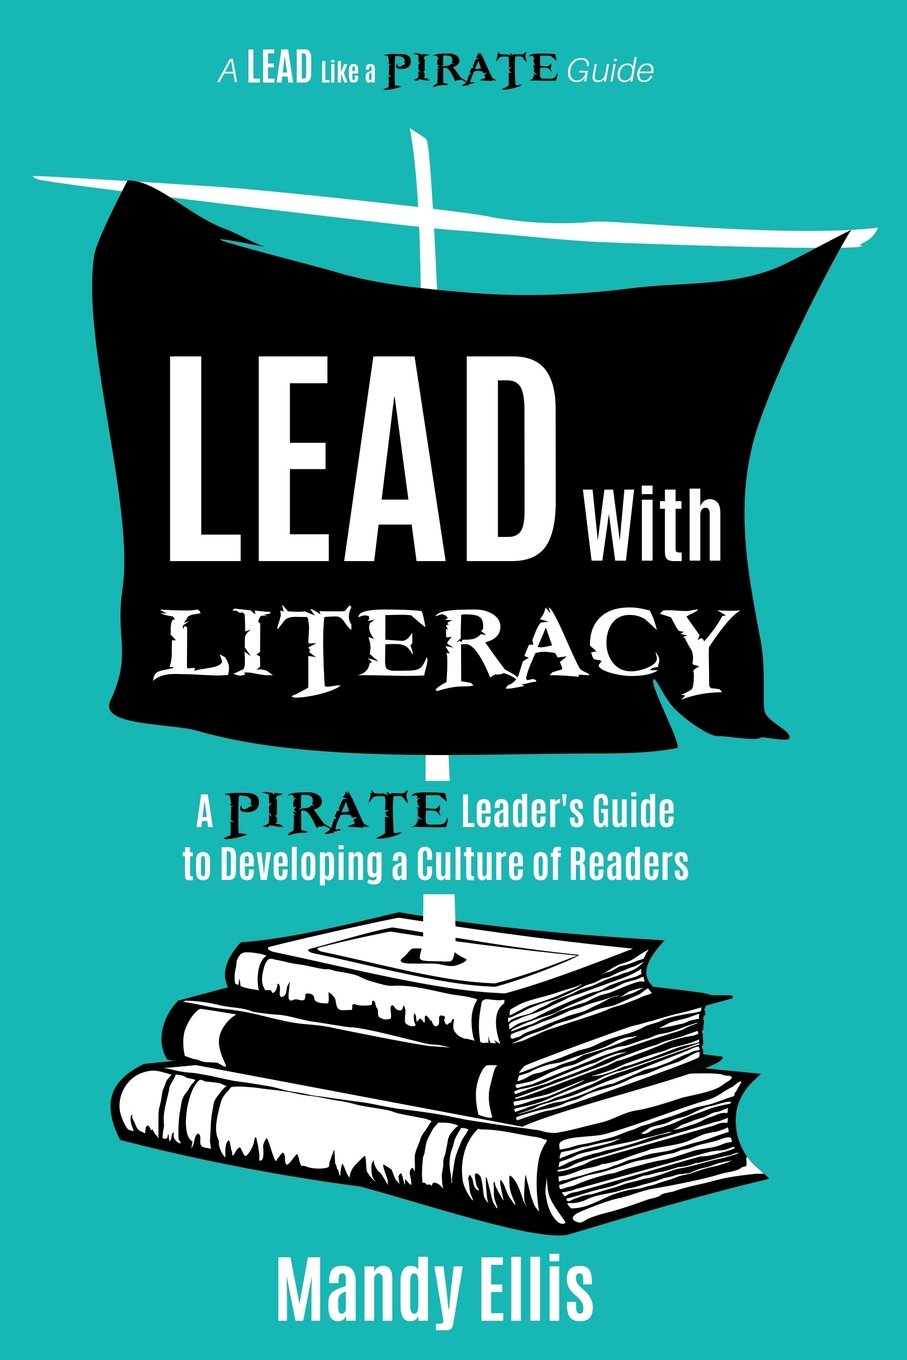 Amazon.com: Lead with Literacy: A Pirate Leader's Guide to ...